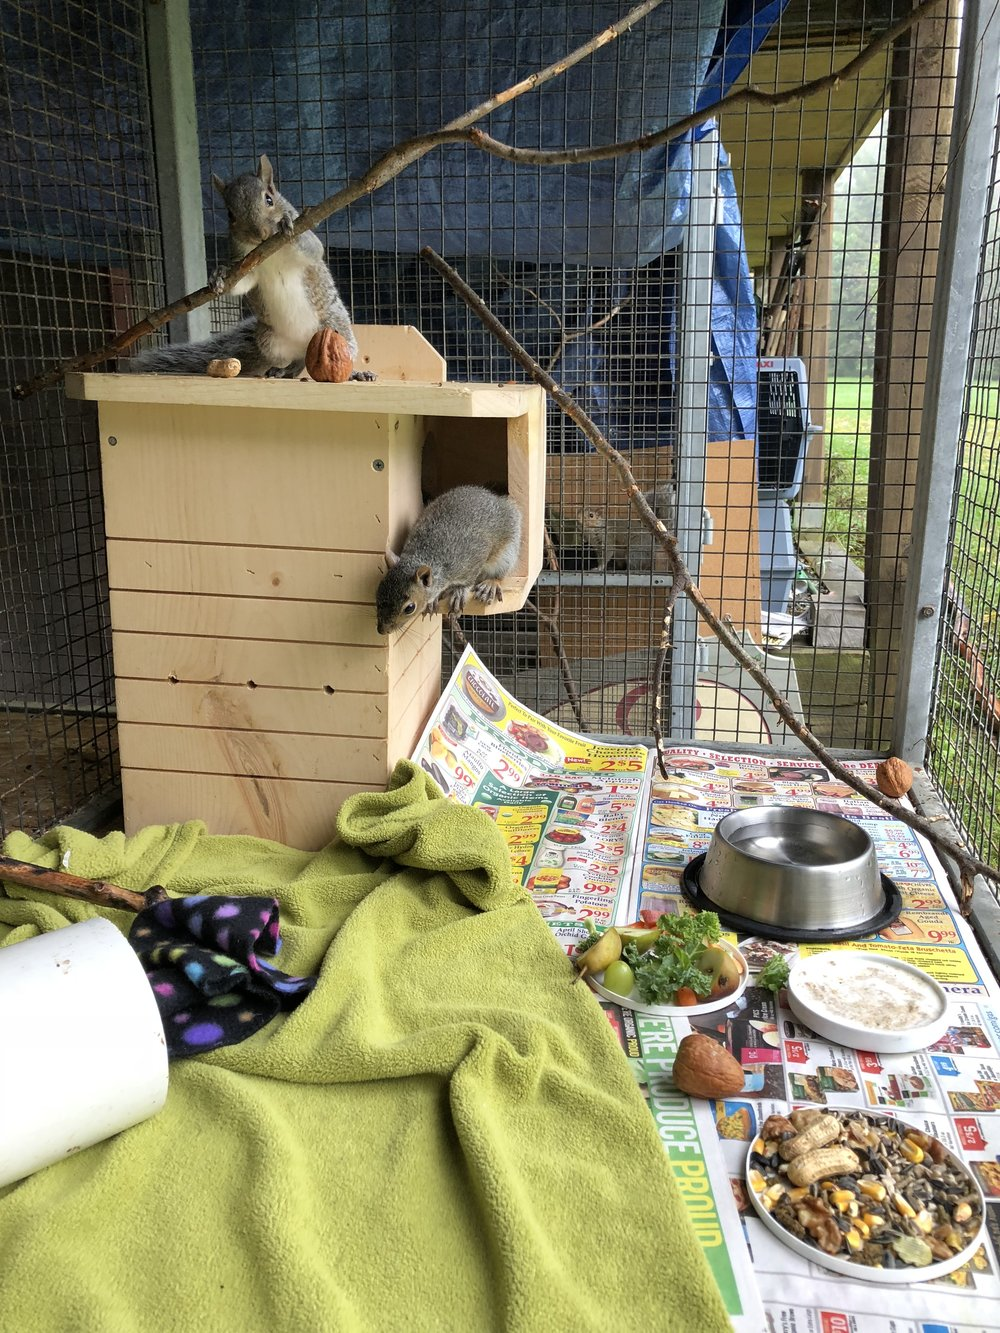 Eastern grey squirrel orphans enjoying their first day outside in a new nest box. This box will eventually accompany them into their forever wild release site, making their transition easier.